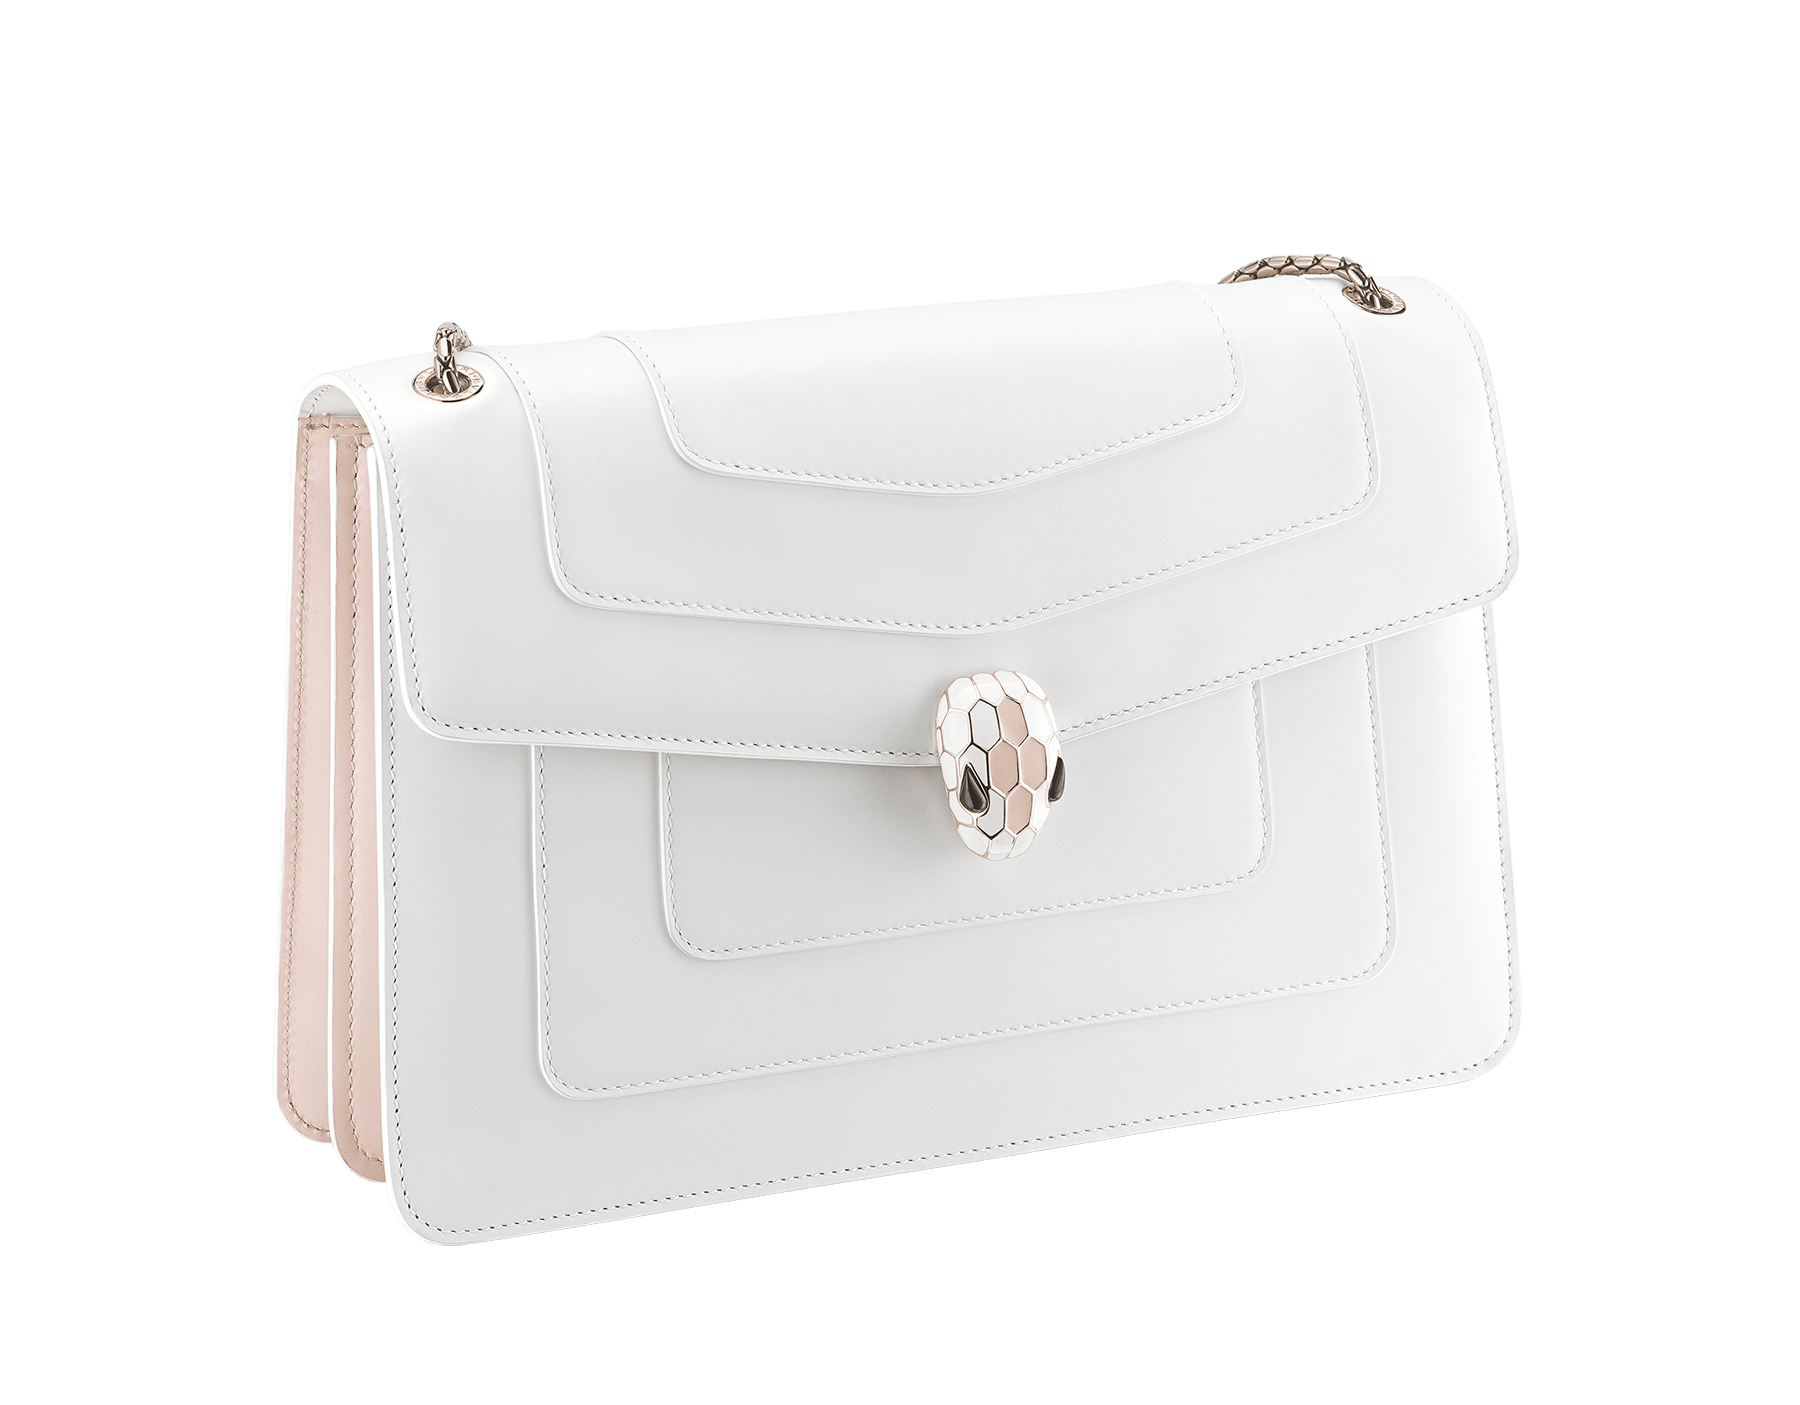 """Serpenti Forever"" shoulder bag in white calf leather body and crystal rose calf leather sides. Iconic snake head closure in light gold-plated brass enriched with white and crystal rose enamel and black onyx eyes. 290196 image 2"